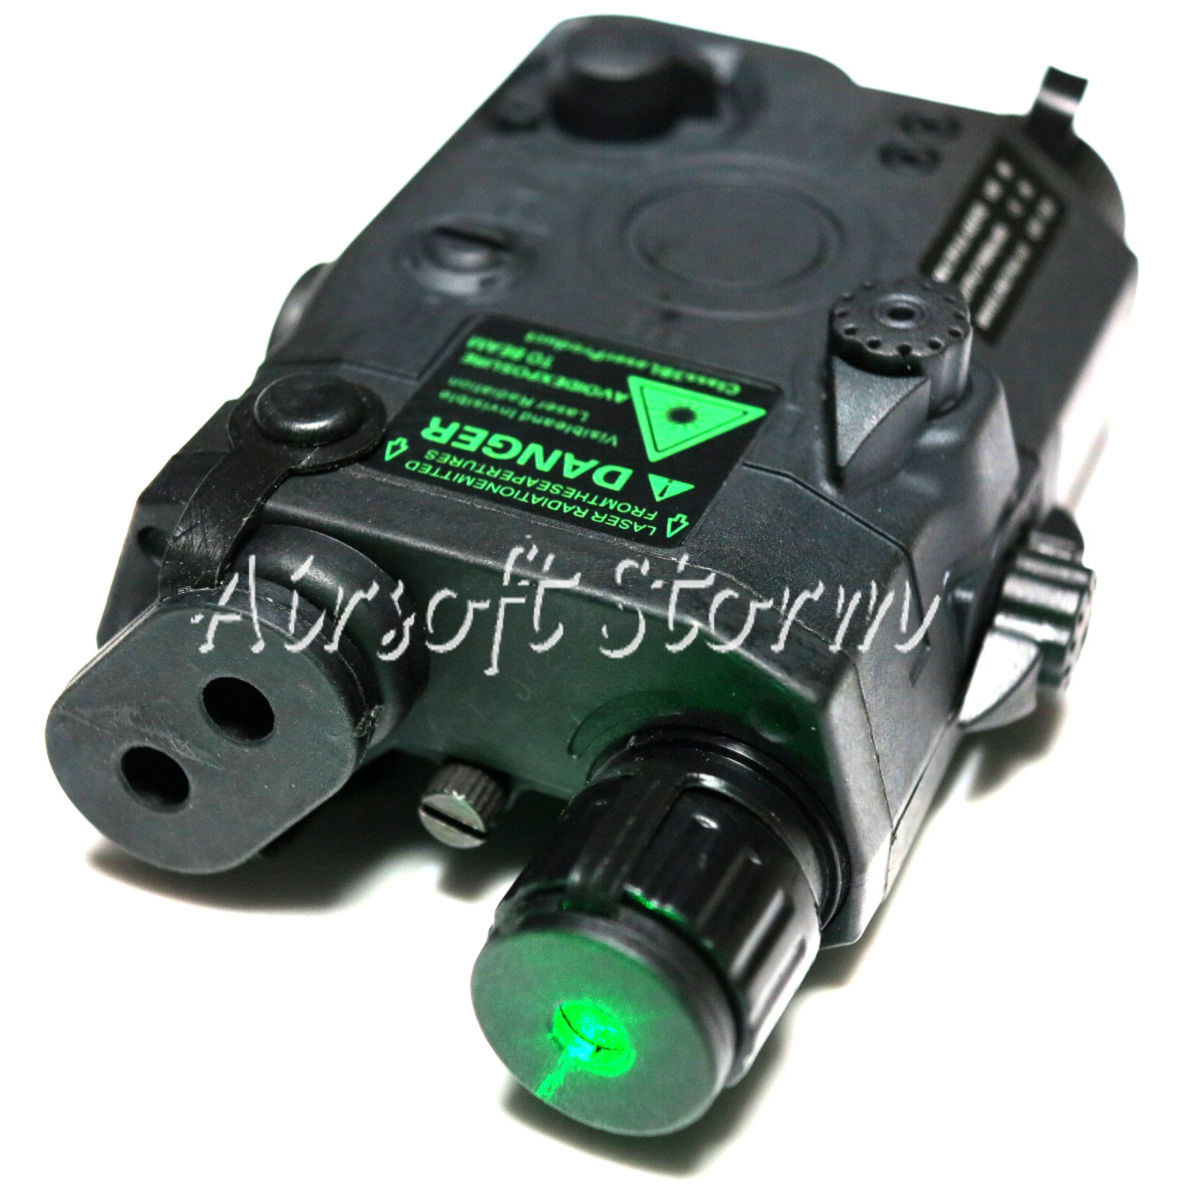 Airsoft Tactical Gear FMA AN/PEQ 15 LA Style Box Black with Green Laser